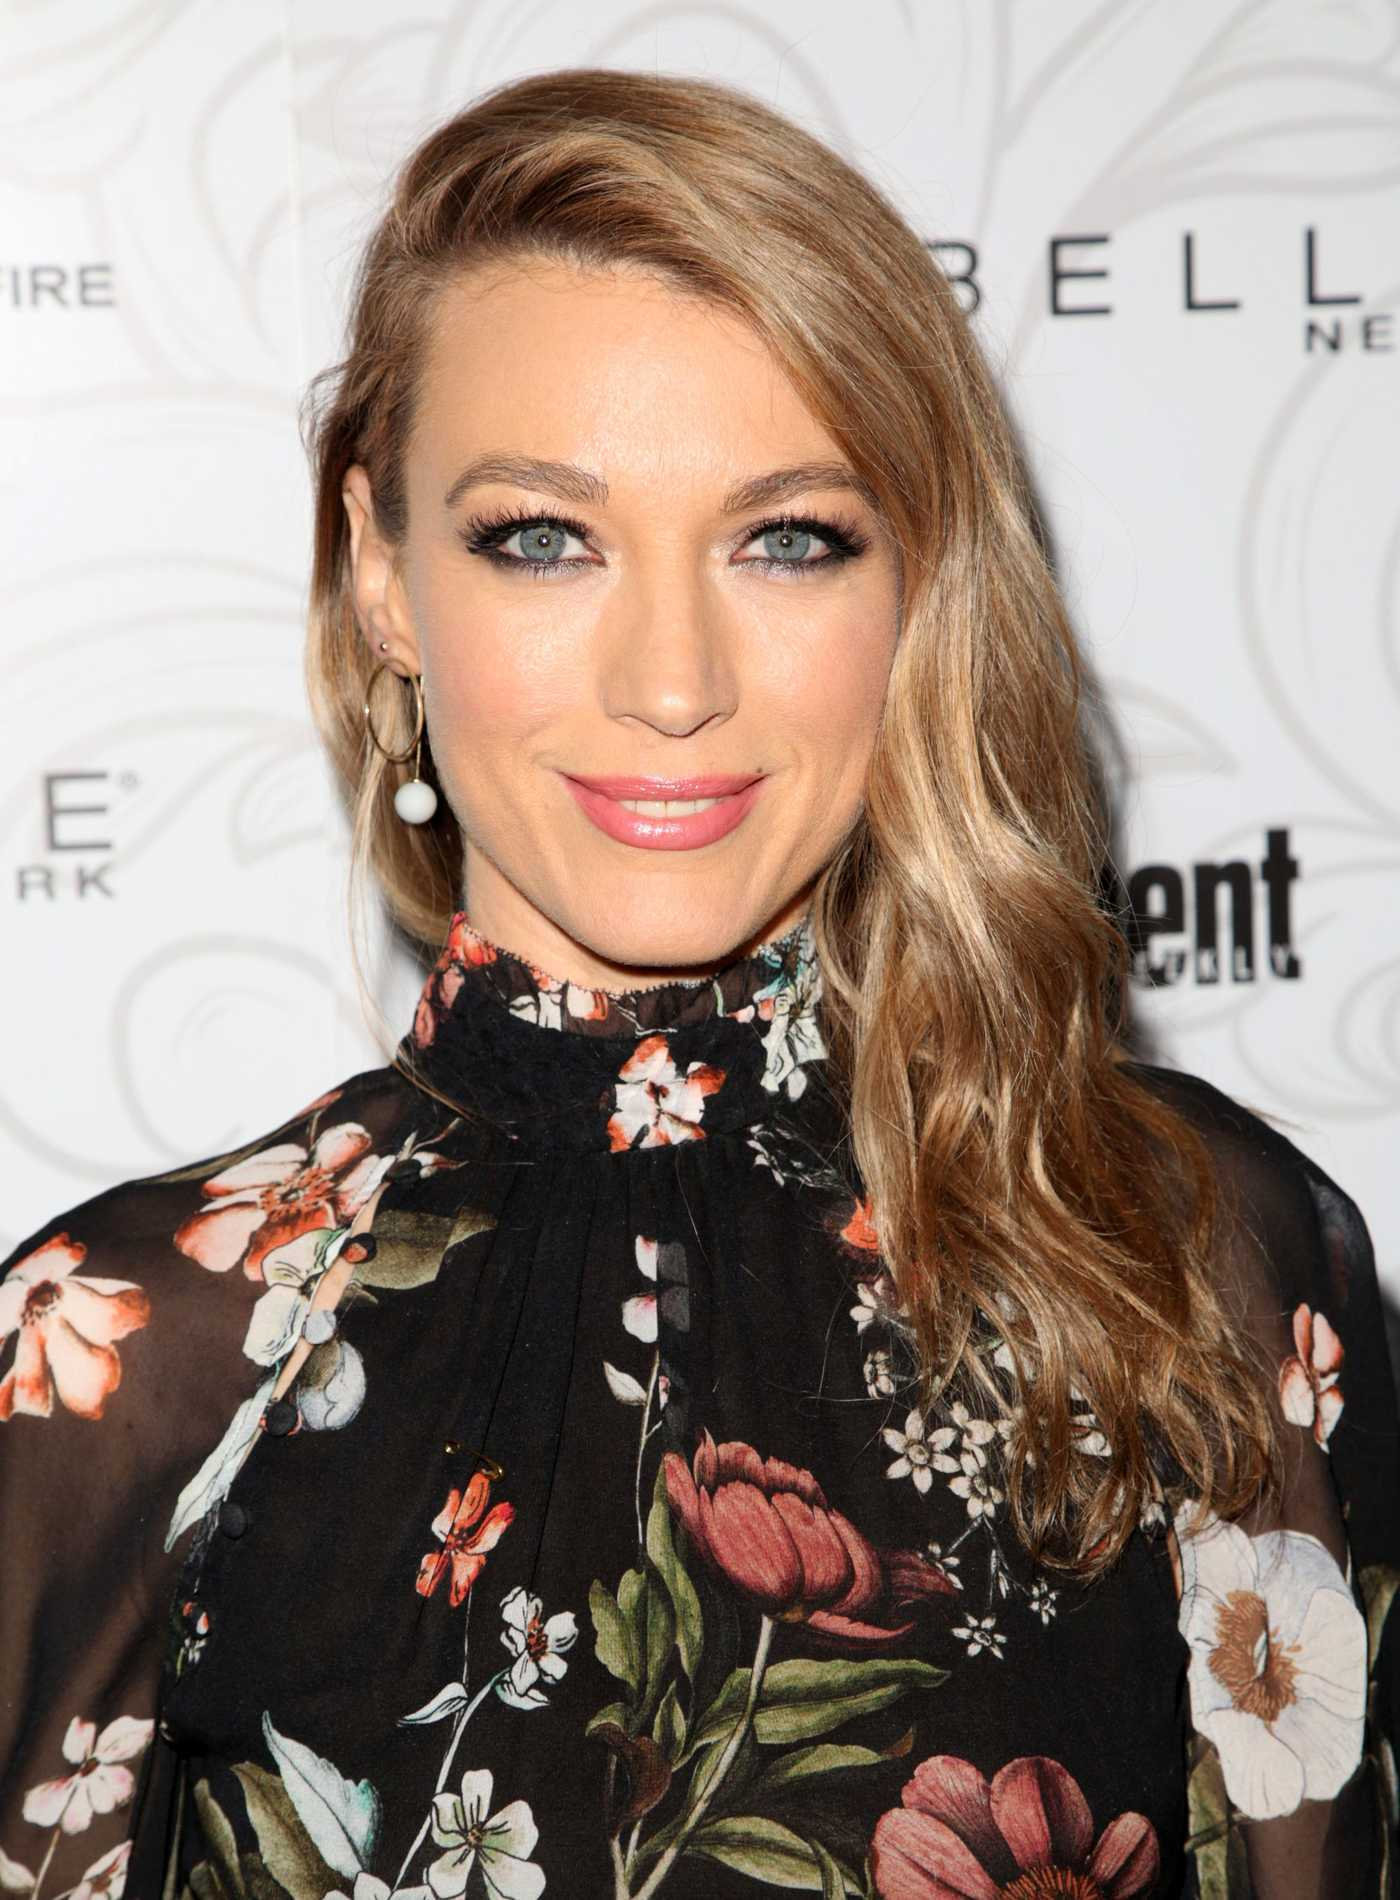 Natalie Zea at the 2017 Entertainment Weekly Celebration of SAG Award Nominees in Los Angeles 01/28/2017